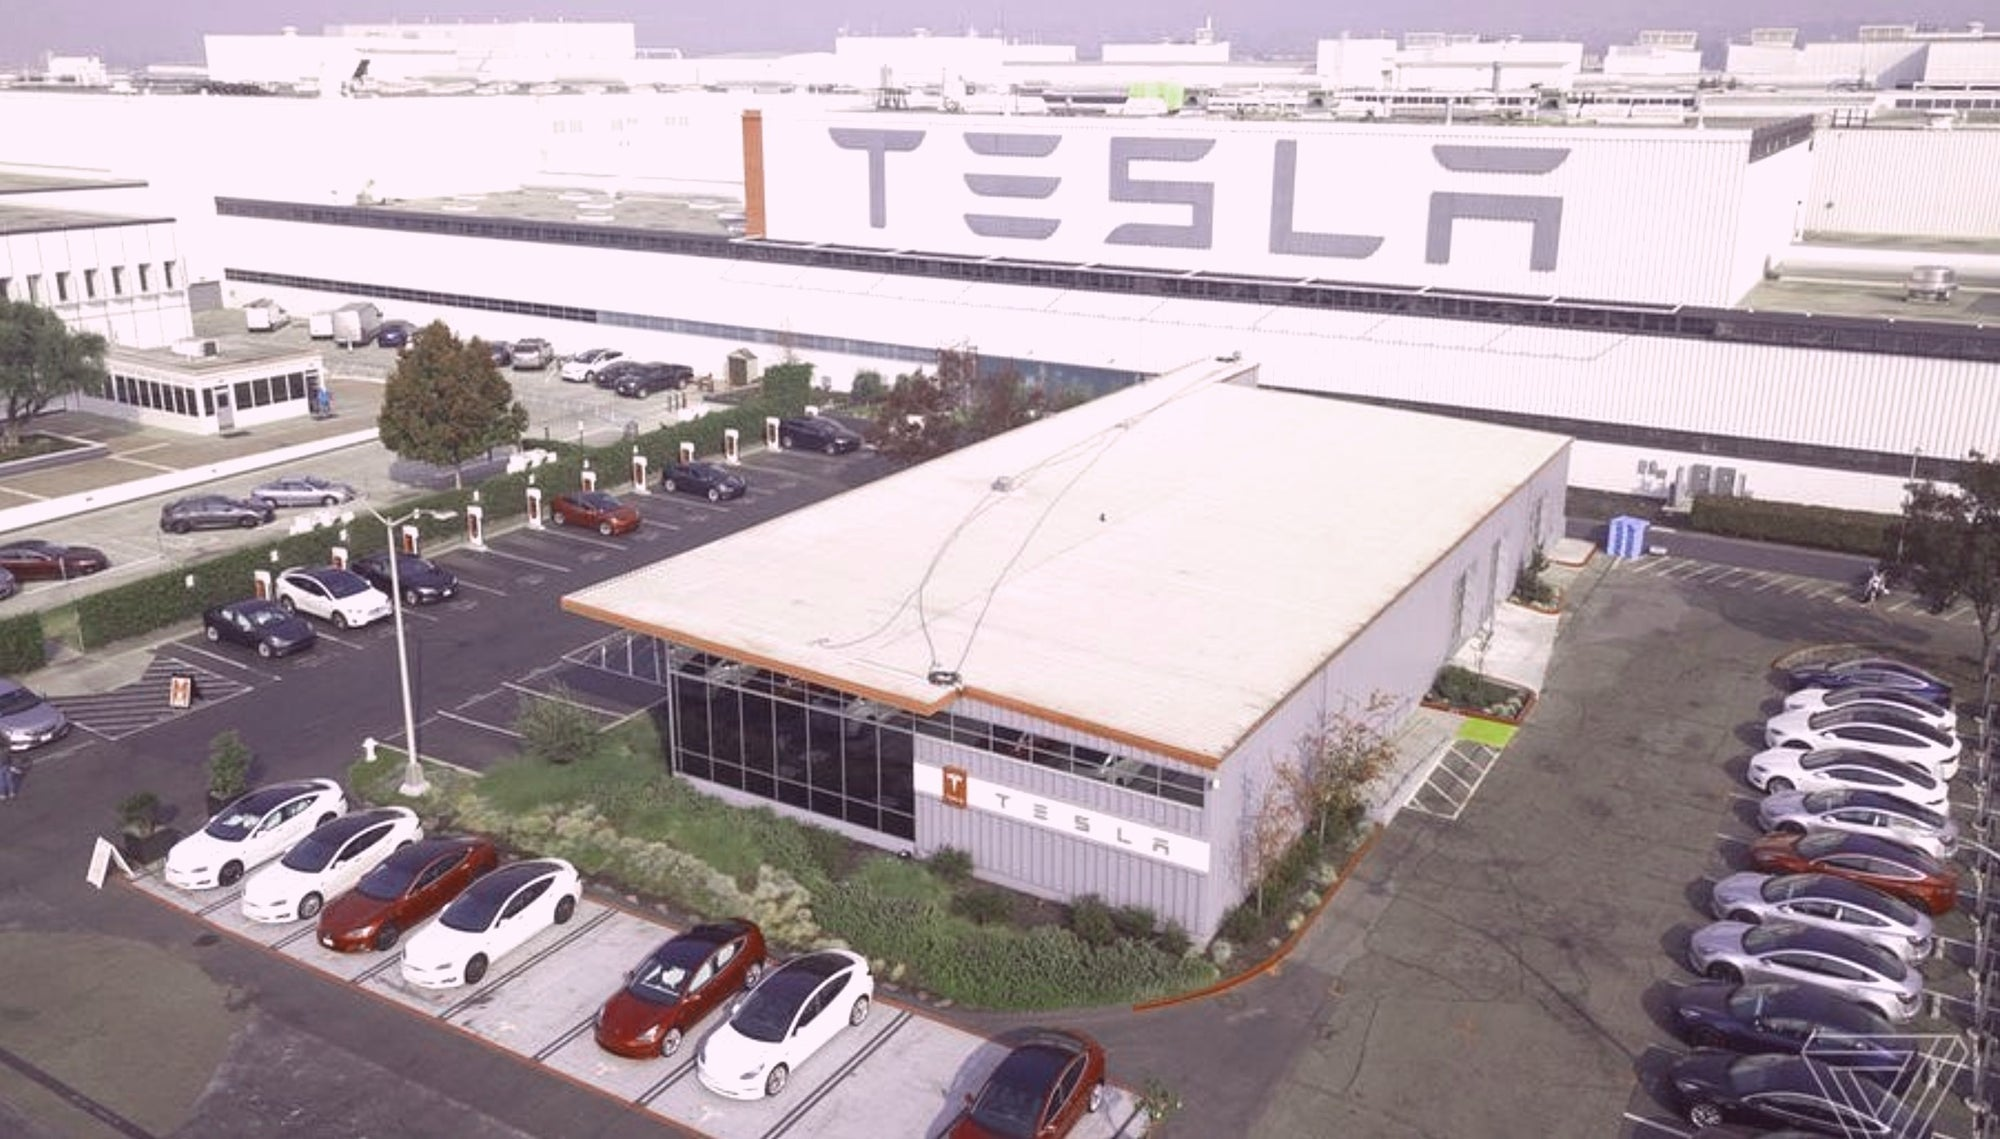 Tesla Fremont Factory's Roadrunner Project Indicates It Has Solved The Battery Bottleneck Issue